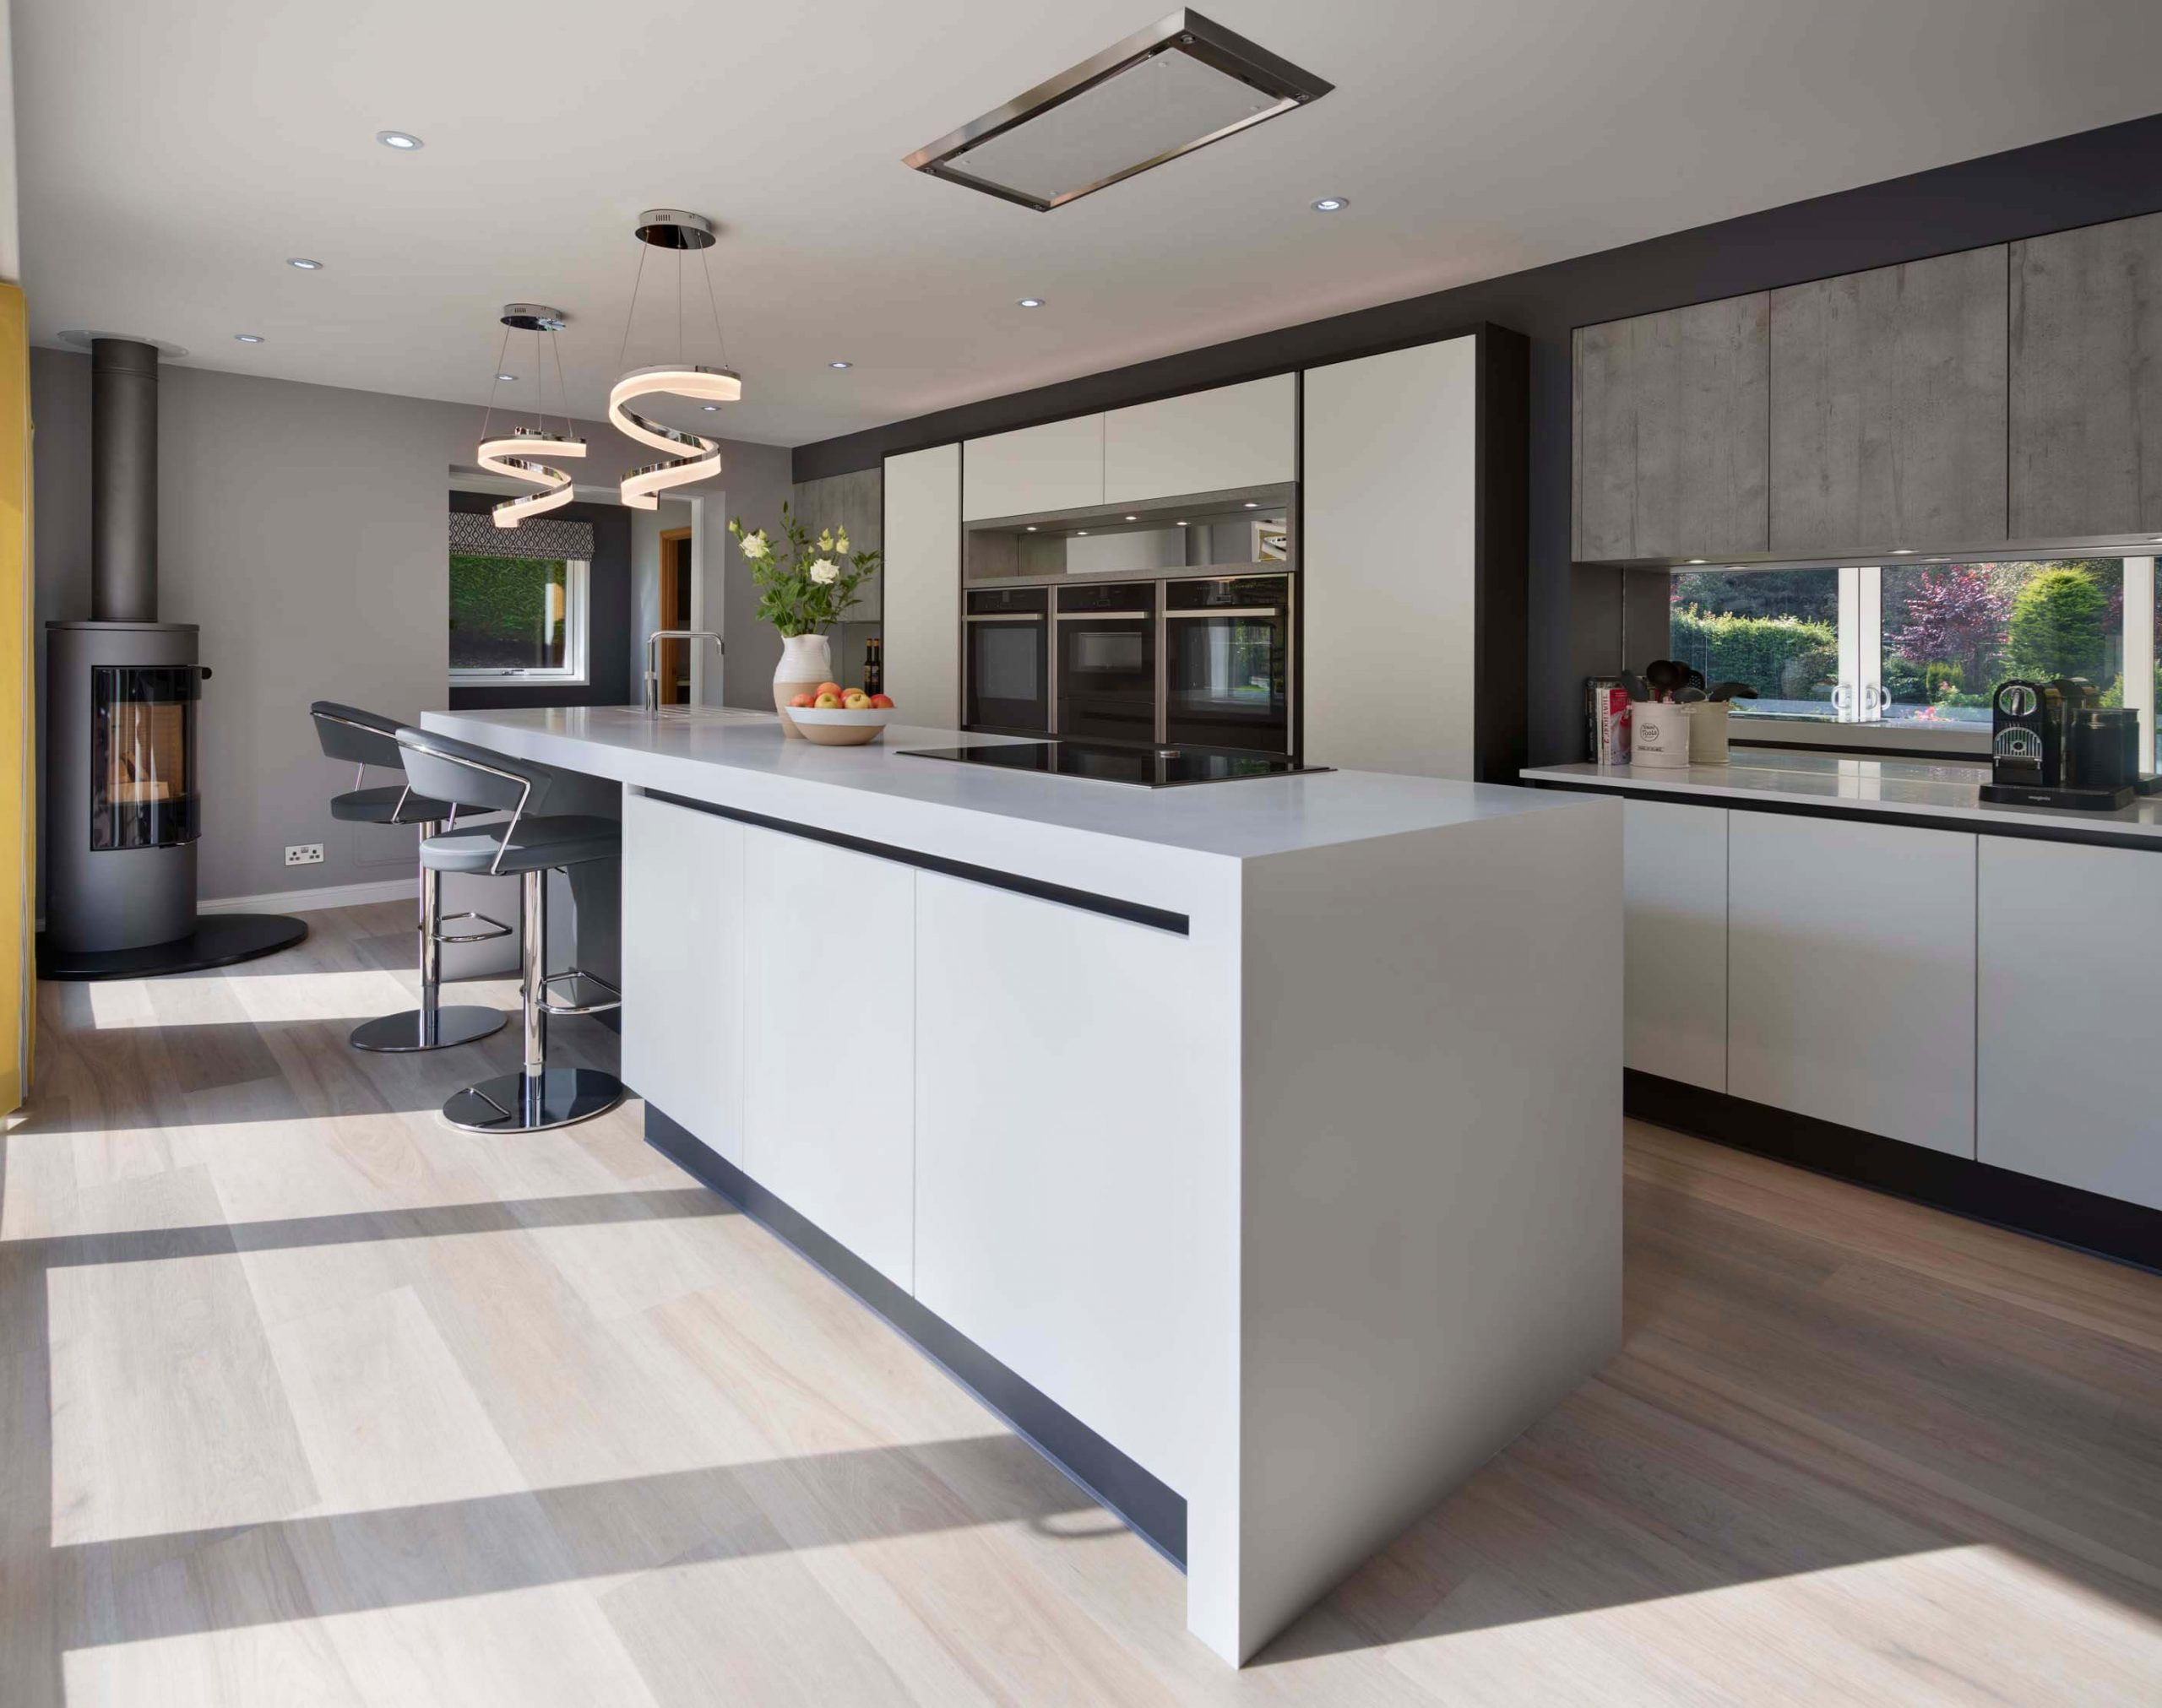 Modern Handleless Kitchen With An Industrial Style (4)